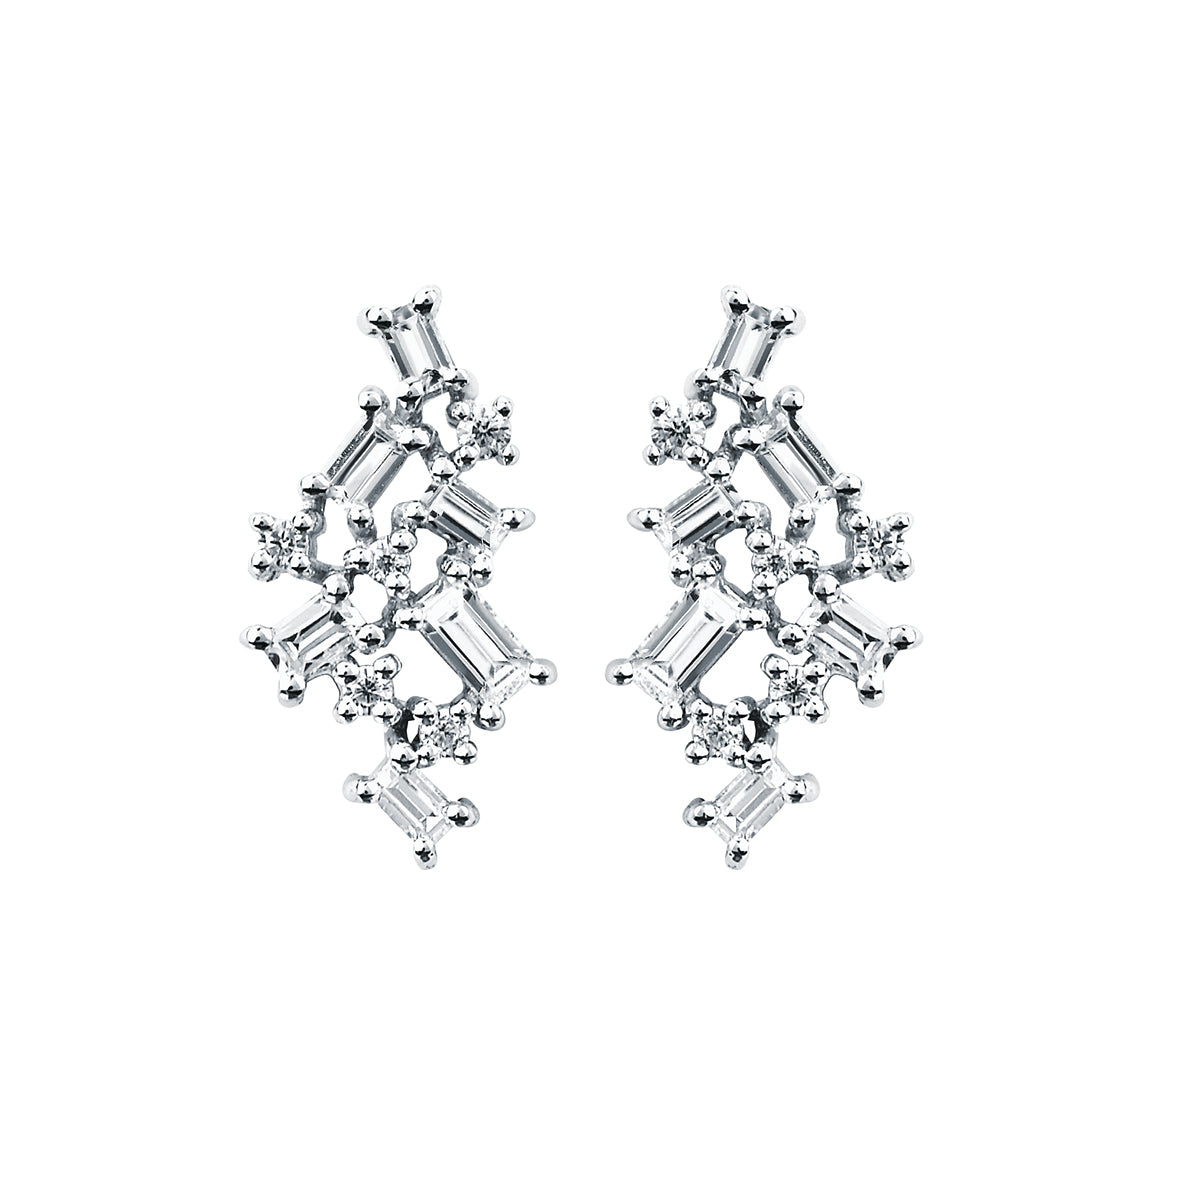 Diamond Baguette Cluster Stud Earrings in White, Yellow or Rose Gold - Talisman Collection Fine Jewelers